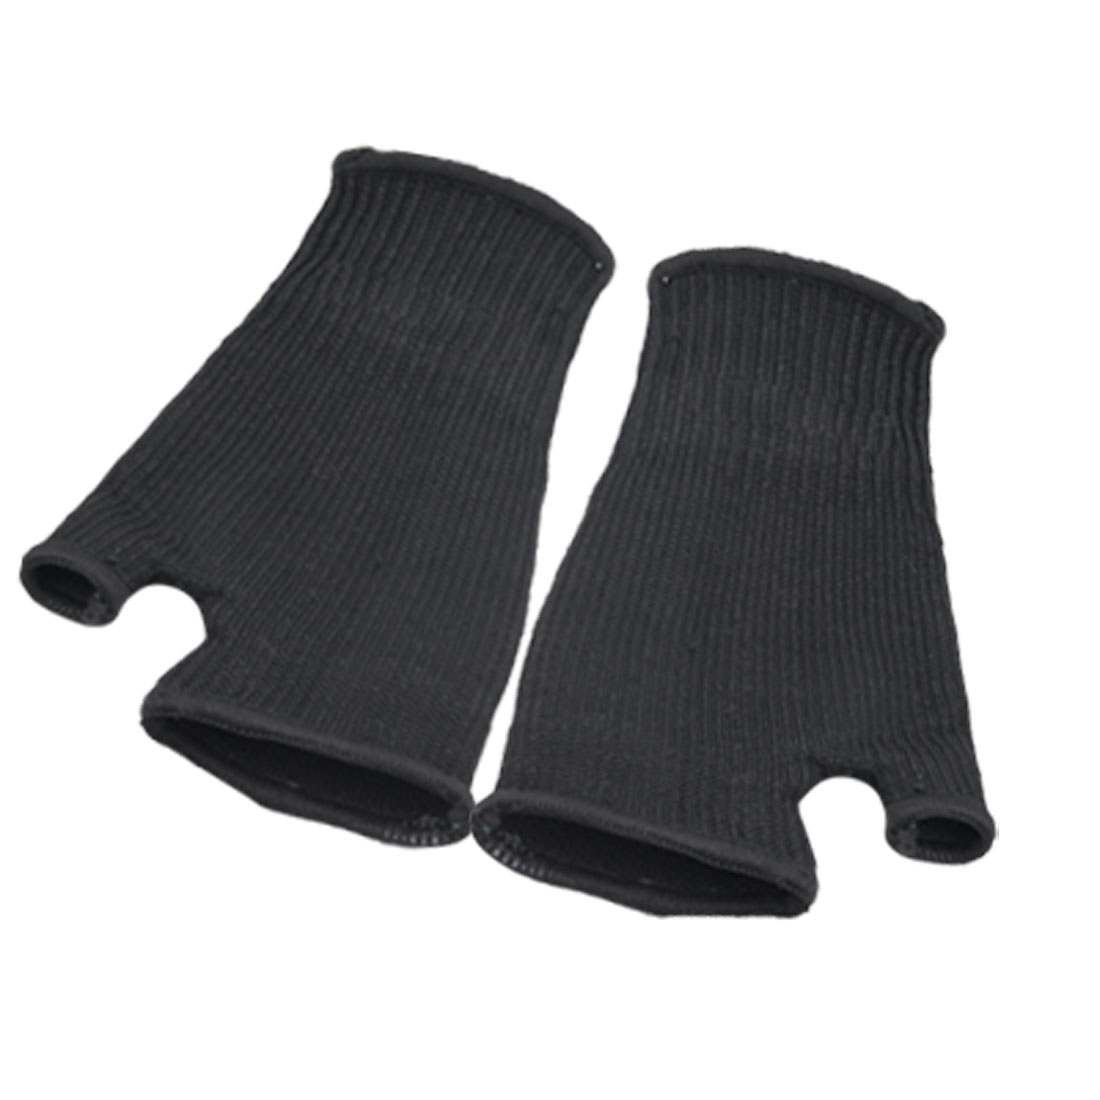 One Pair Sporting Protection Black Elastic Thumbhole Mitten Palm Support